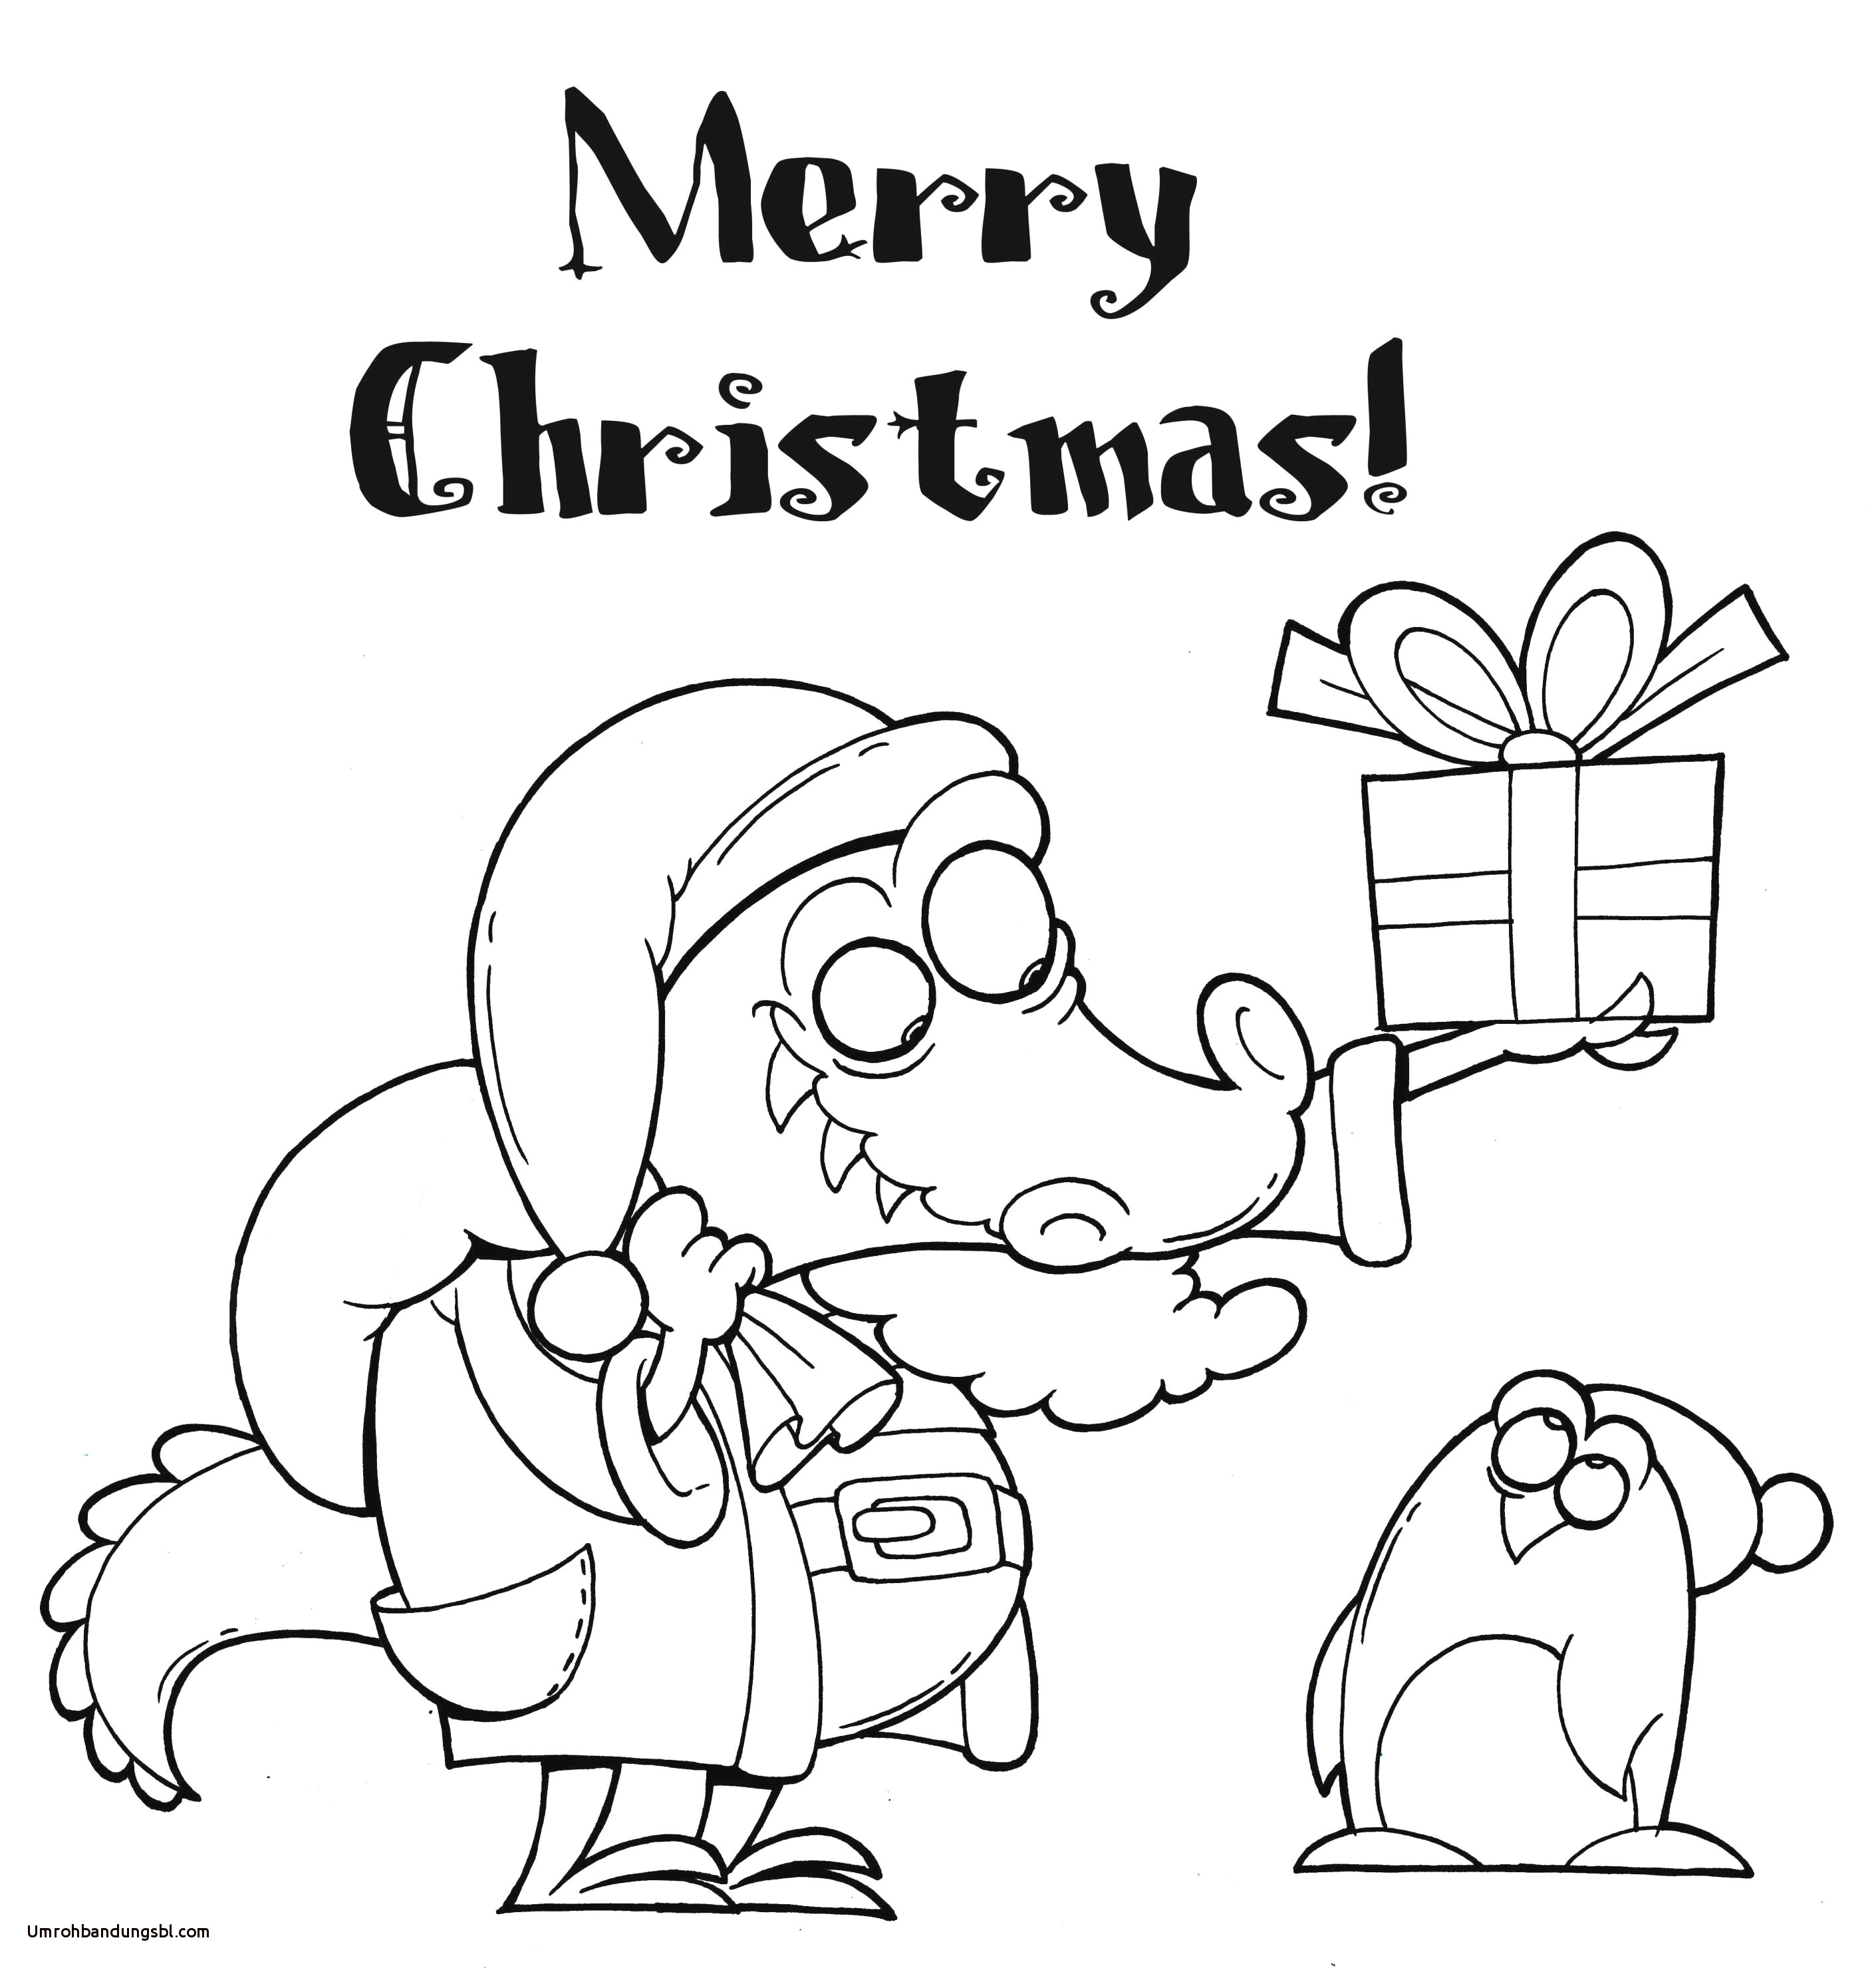 Merry Christmas Coloring Pages Pdf With Pinkie Pie To Print Awesome